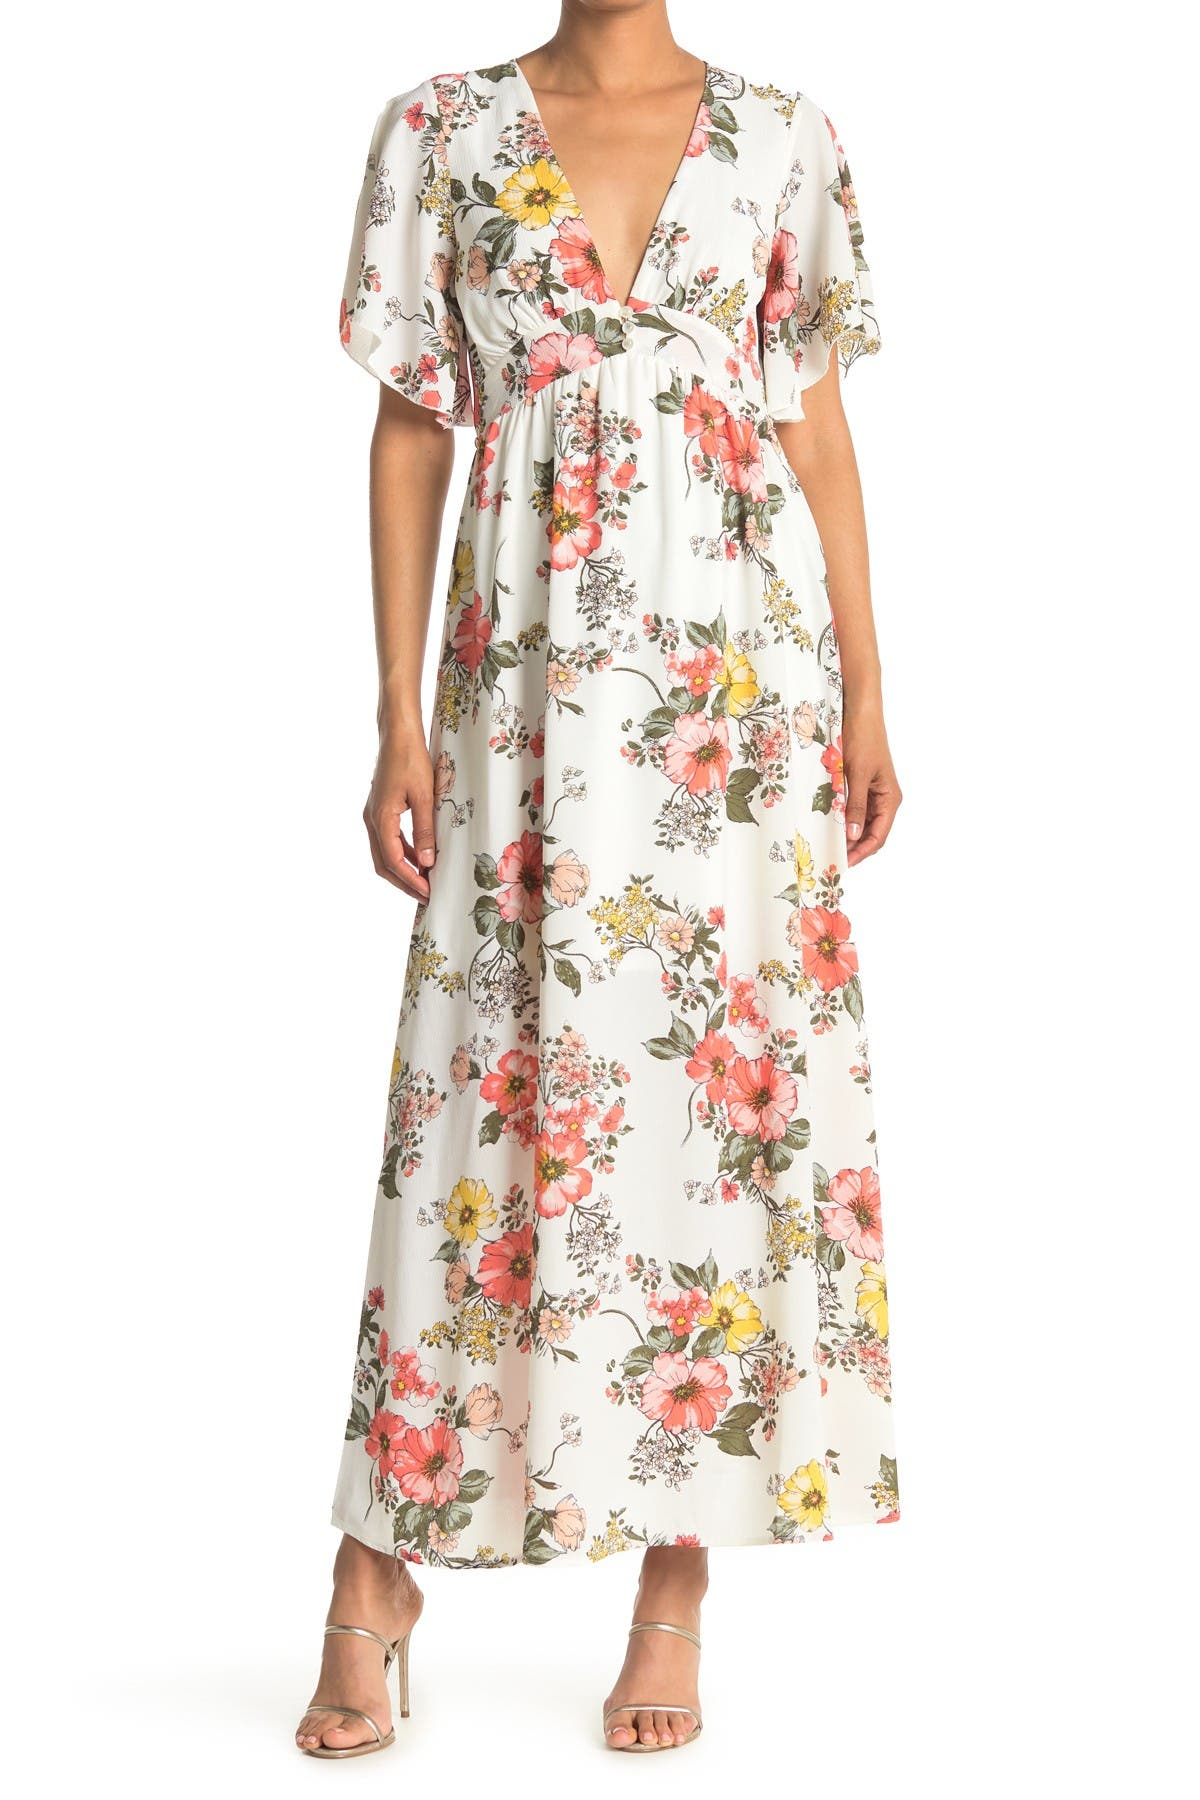 Image of BAILEY BLUE Floral Maxi Dress